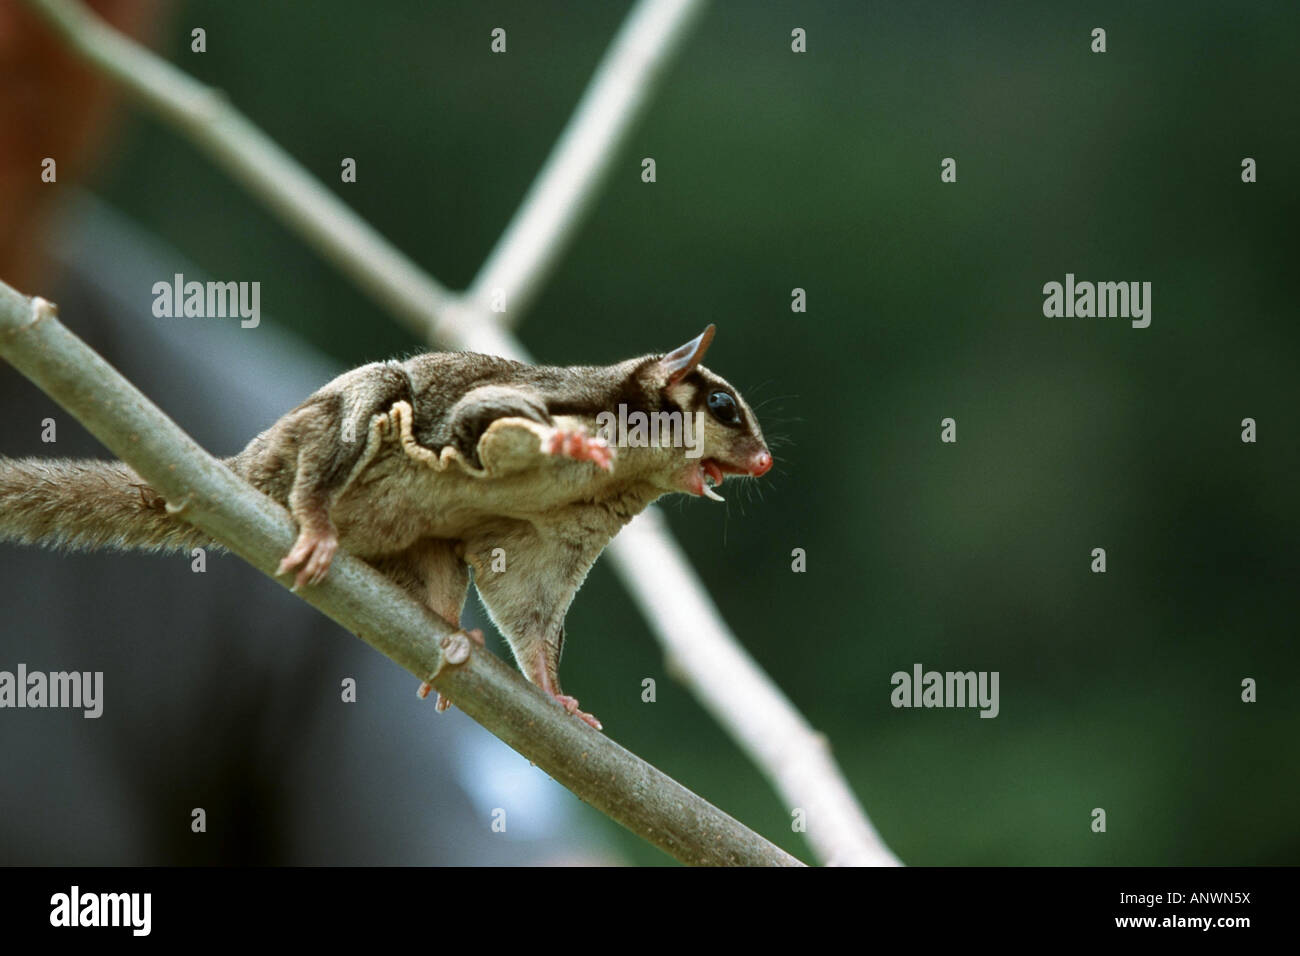 flying squirrel (Petaurus brecipes papuanus), sitting on a branch, Indonesia, Neuguinea, Irian Jaya - Stock Image